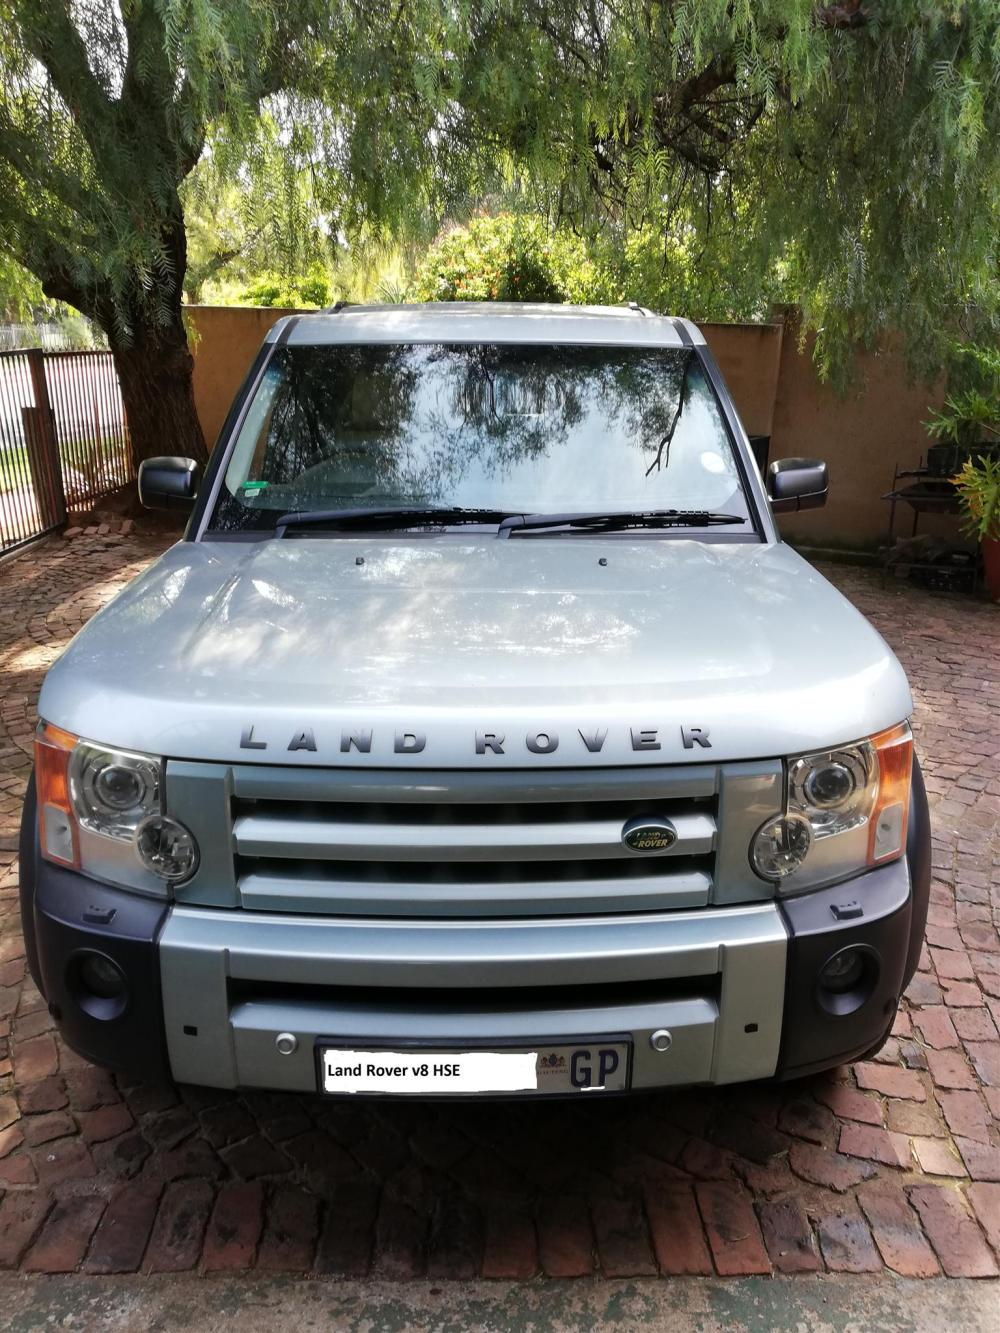 medium resolution of 2007 land rover discovery 3 v8 hse